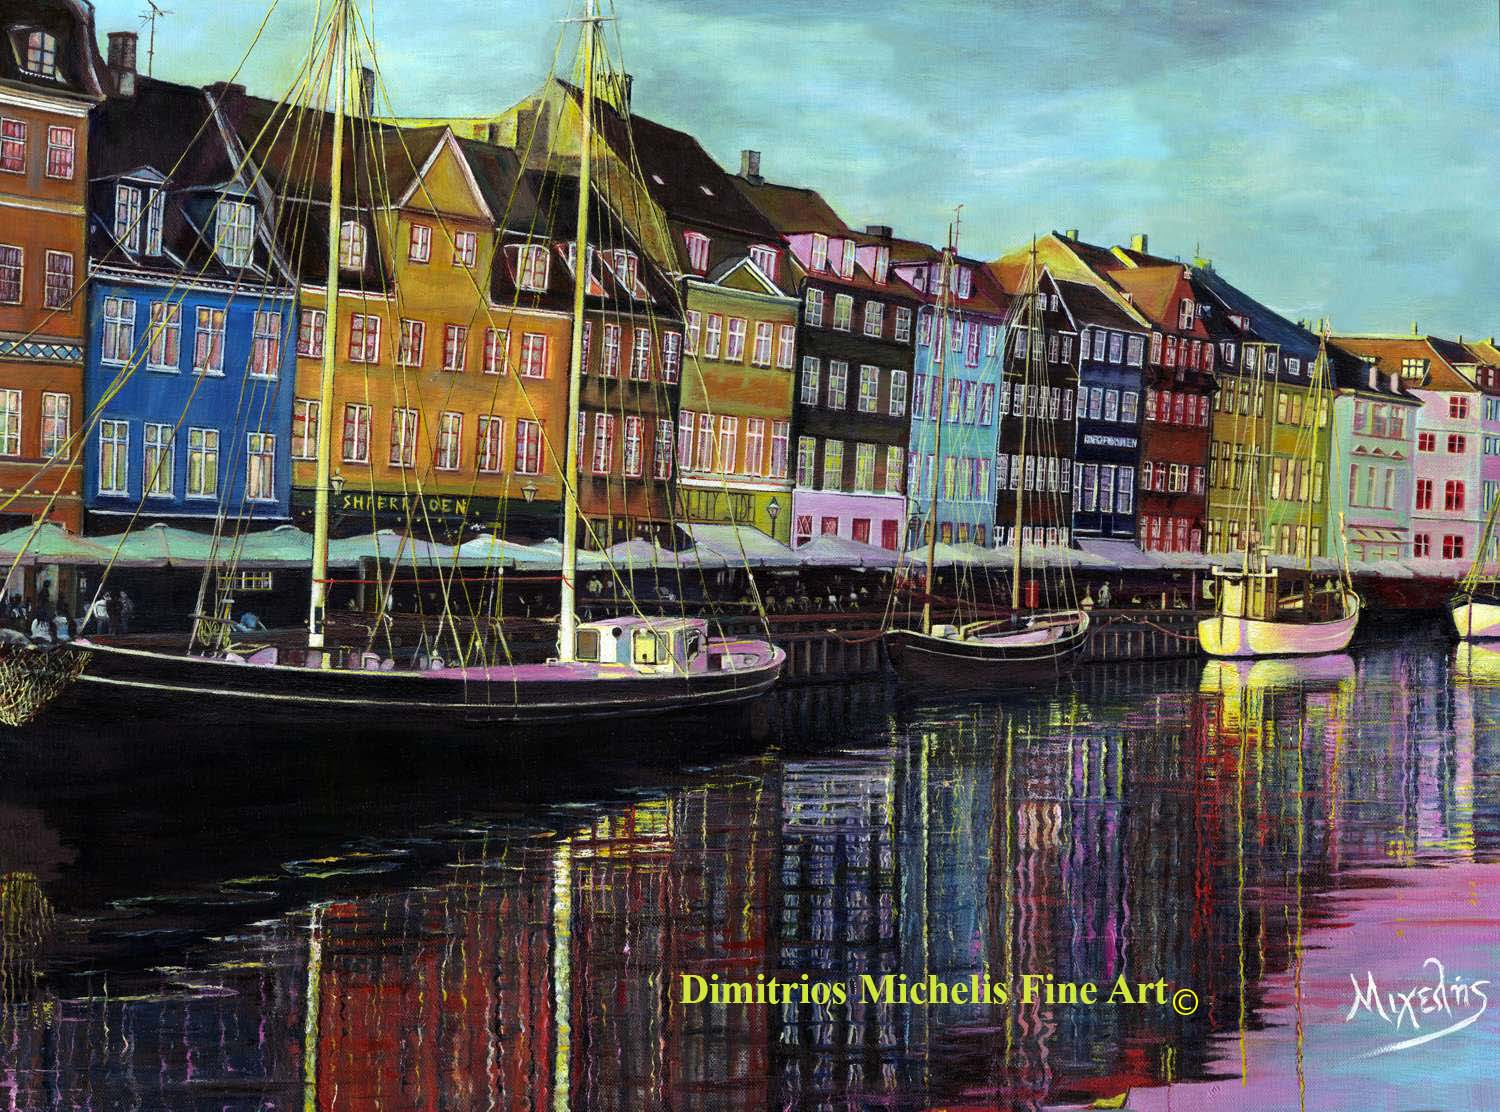 Copenhagen Nyhavn Canal-paintings